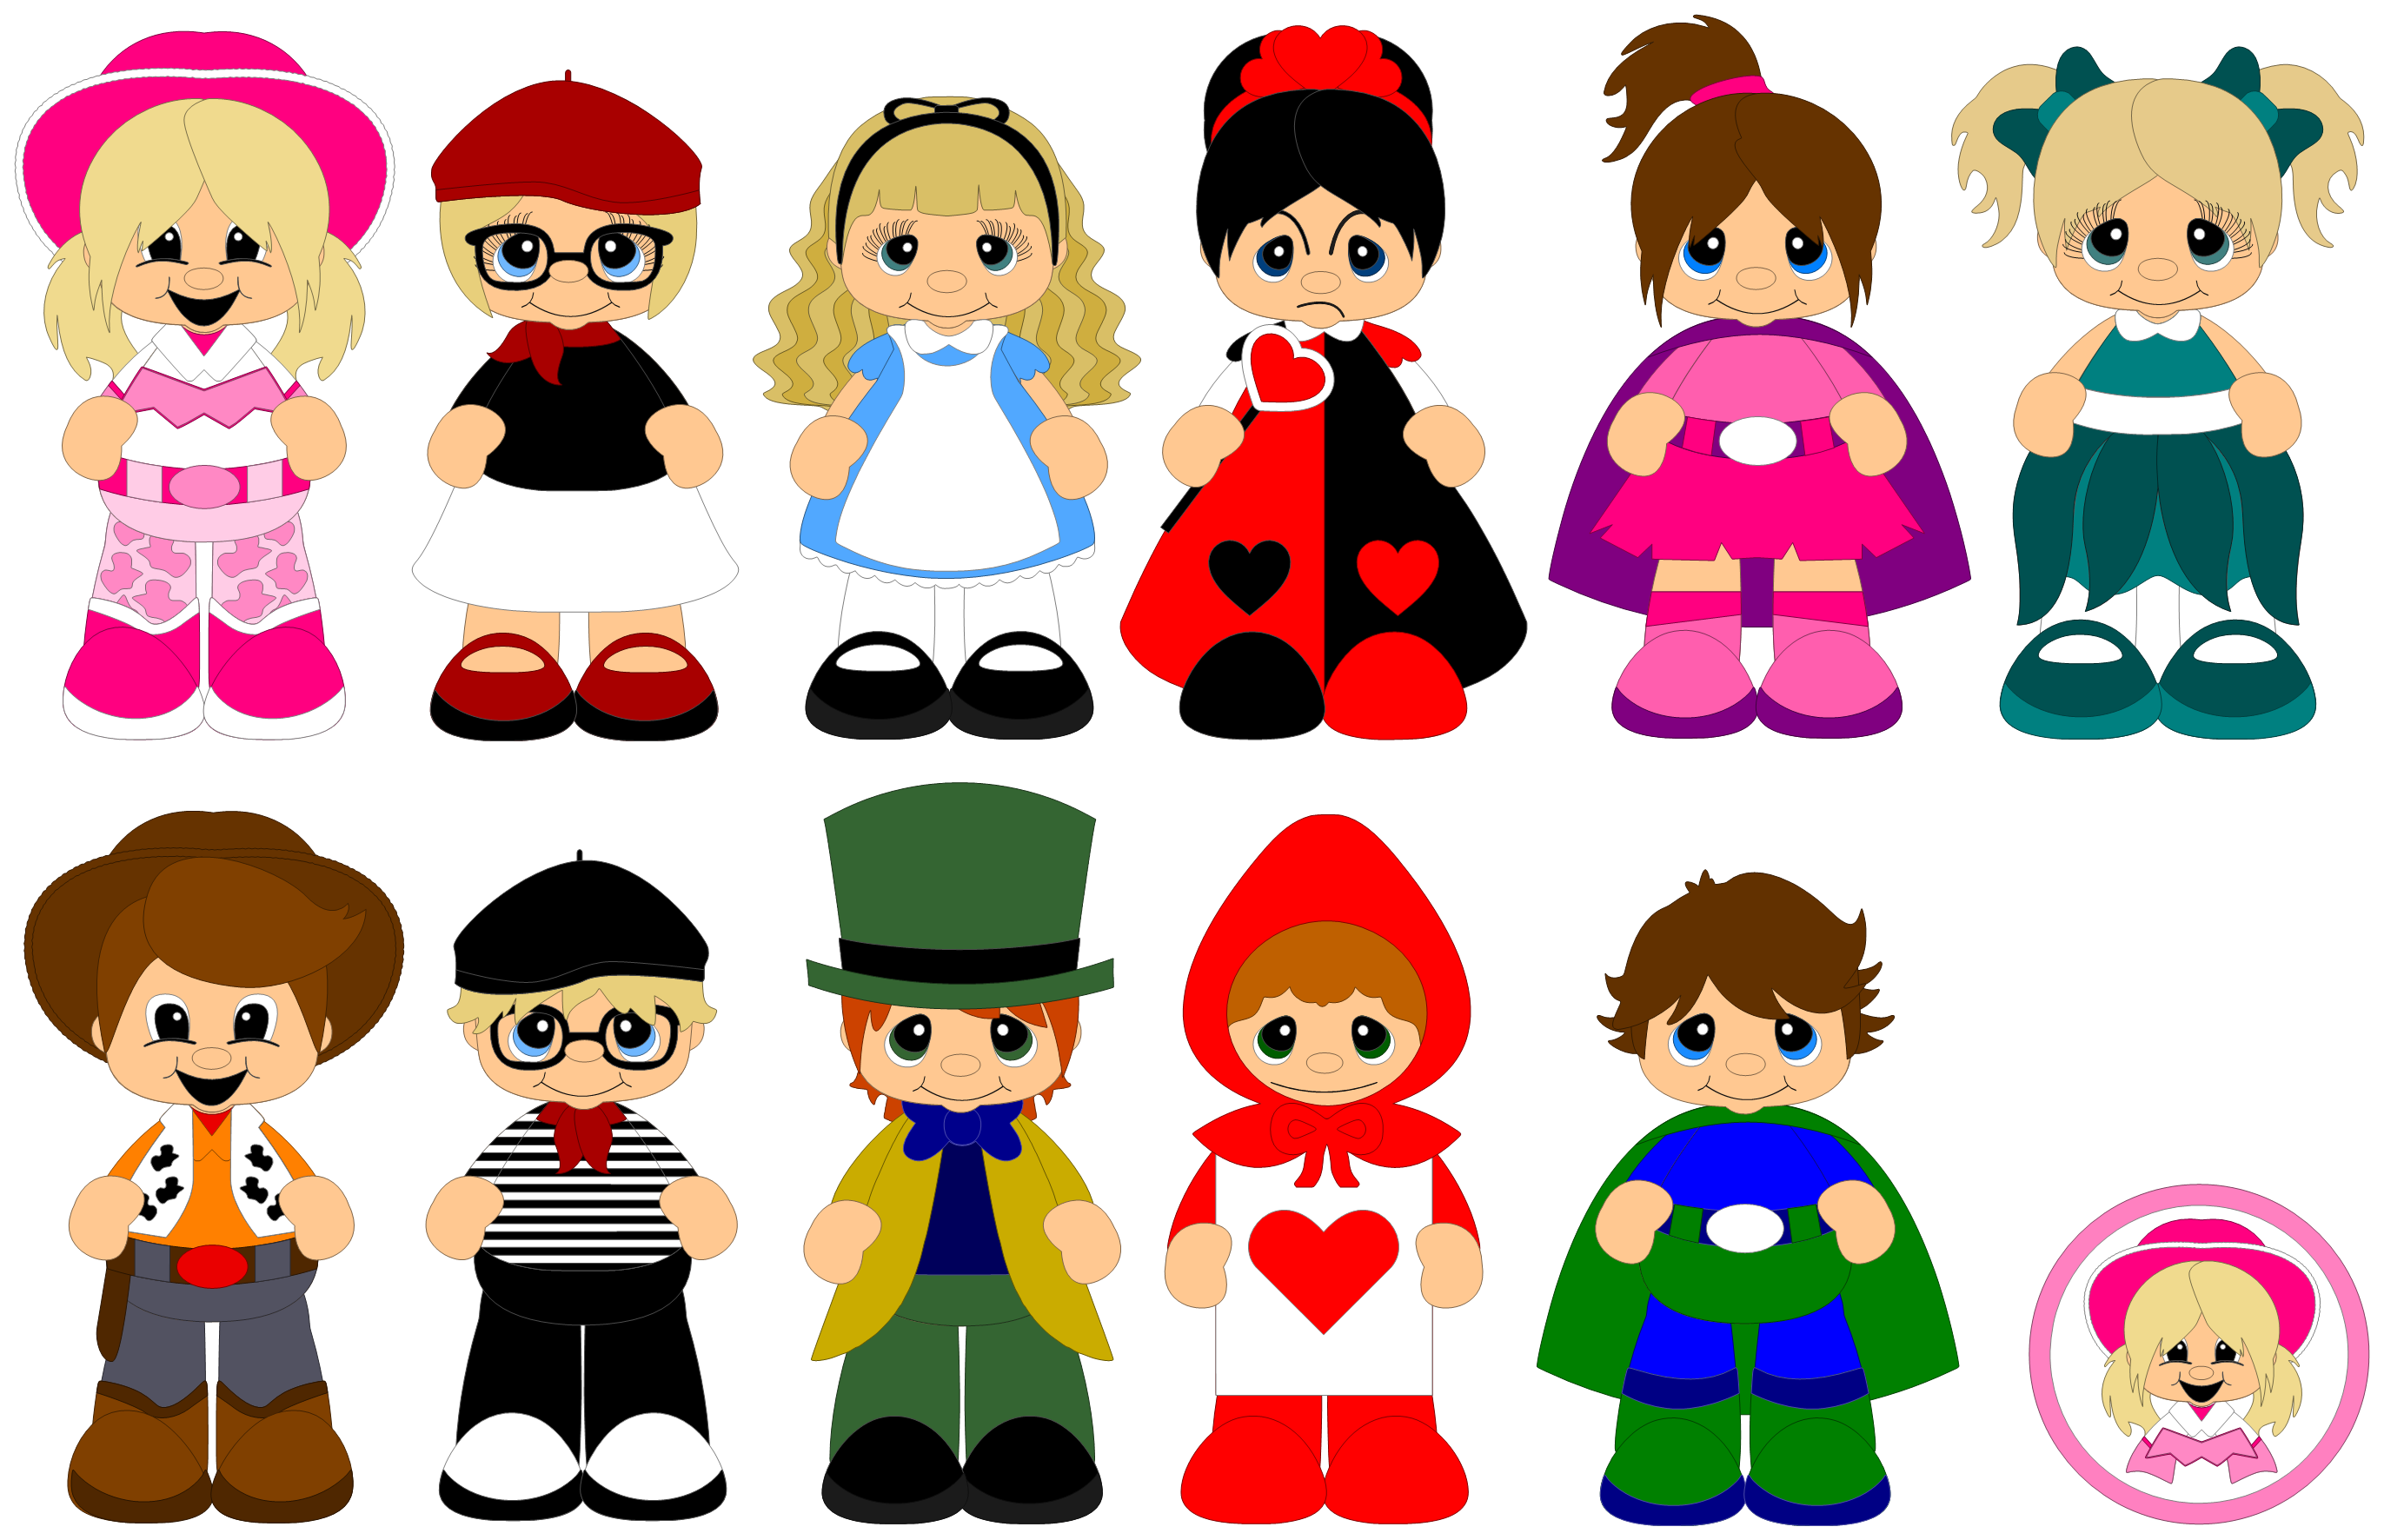 Money and expansion clipart jpg black and white download Costume Parade - Expansion Pack for Scrap Factory jpg black and white download